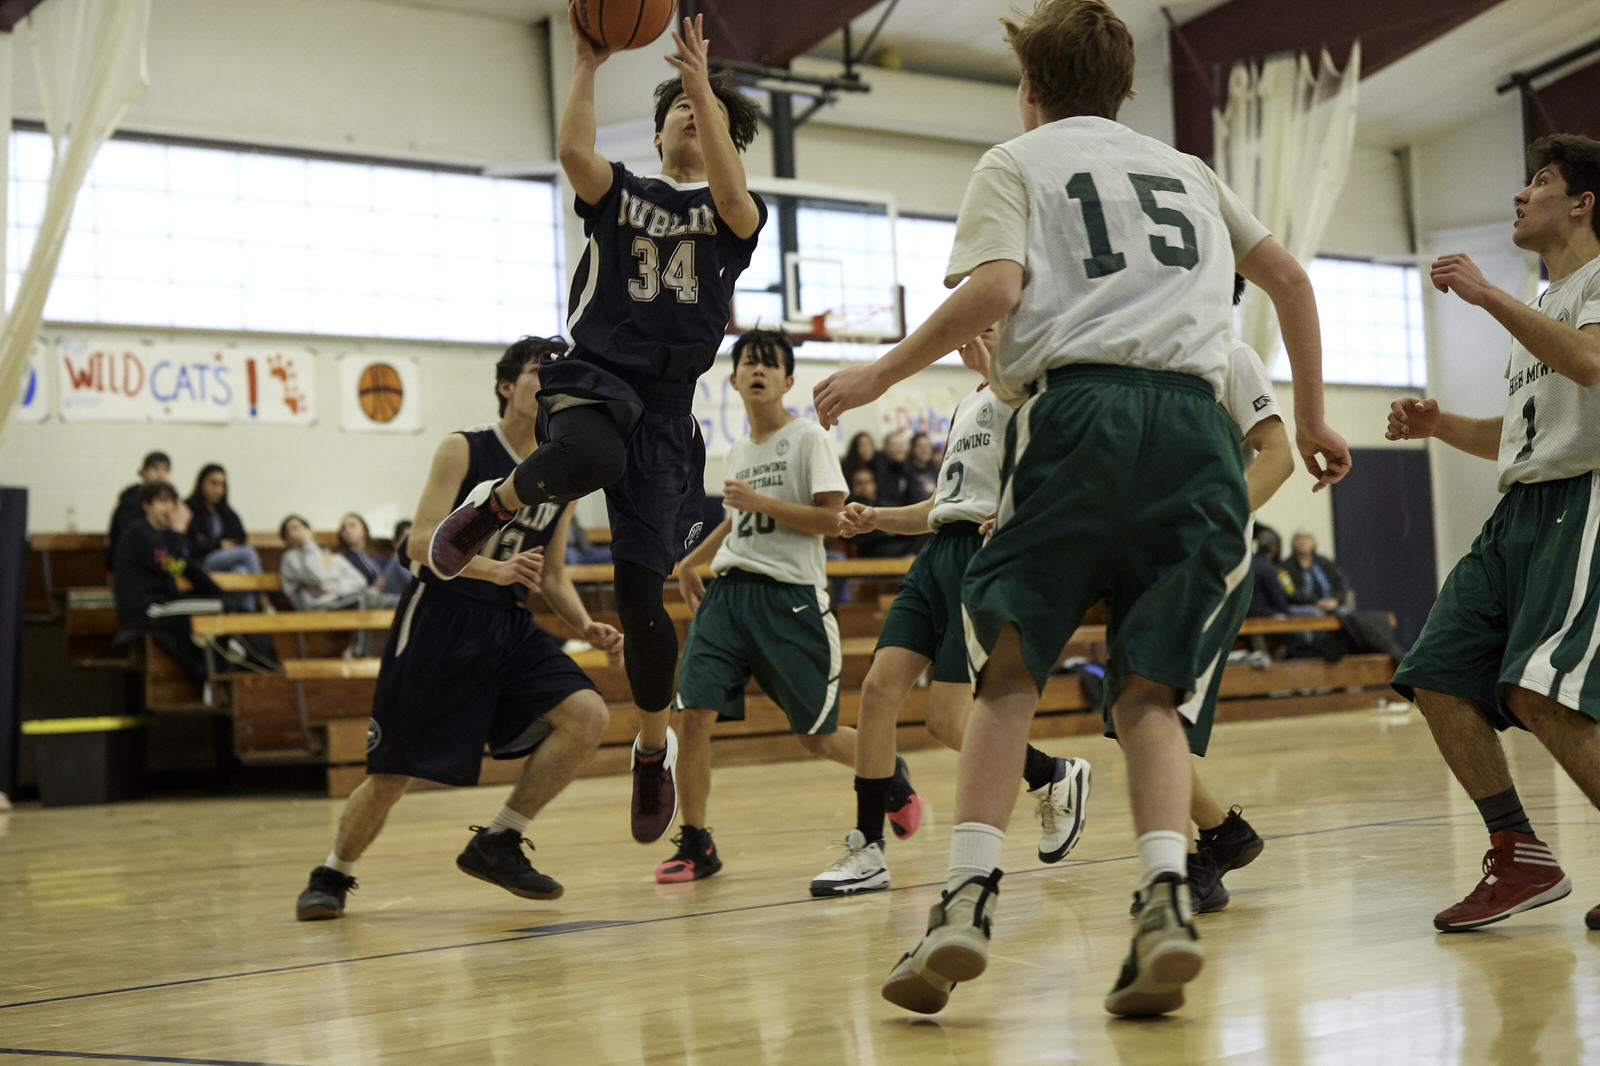 Dublin JV Boys Basketball vs High Mowing School - Jan 26 2019 - 0208.jpg